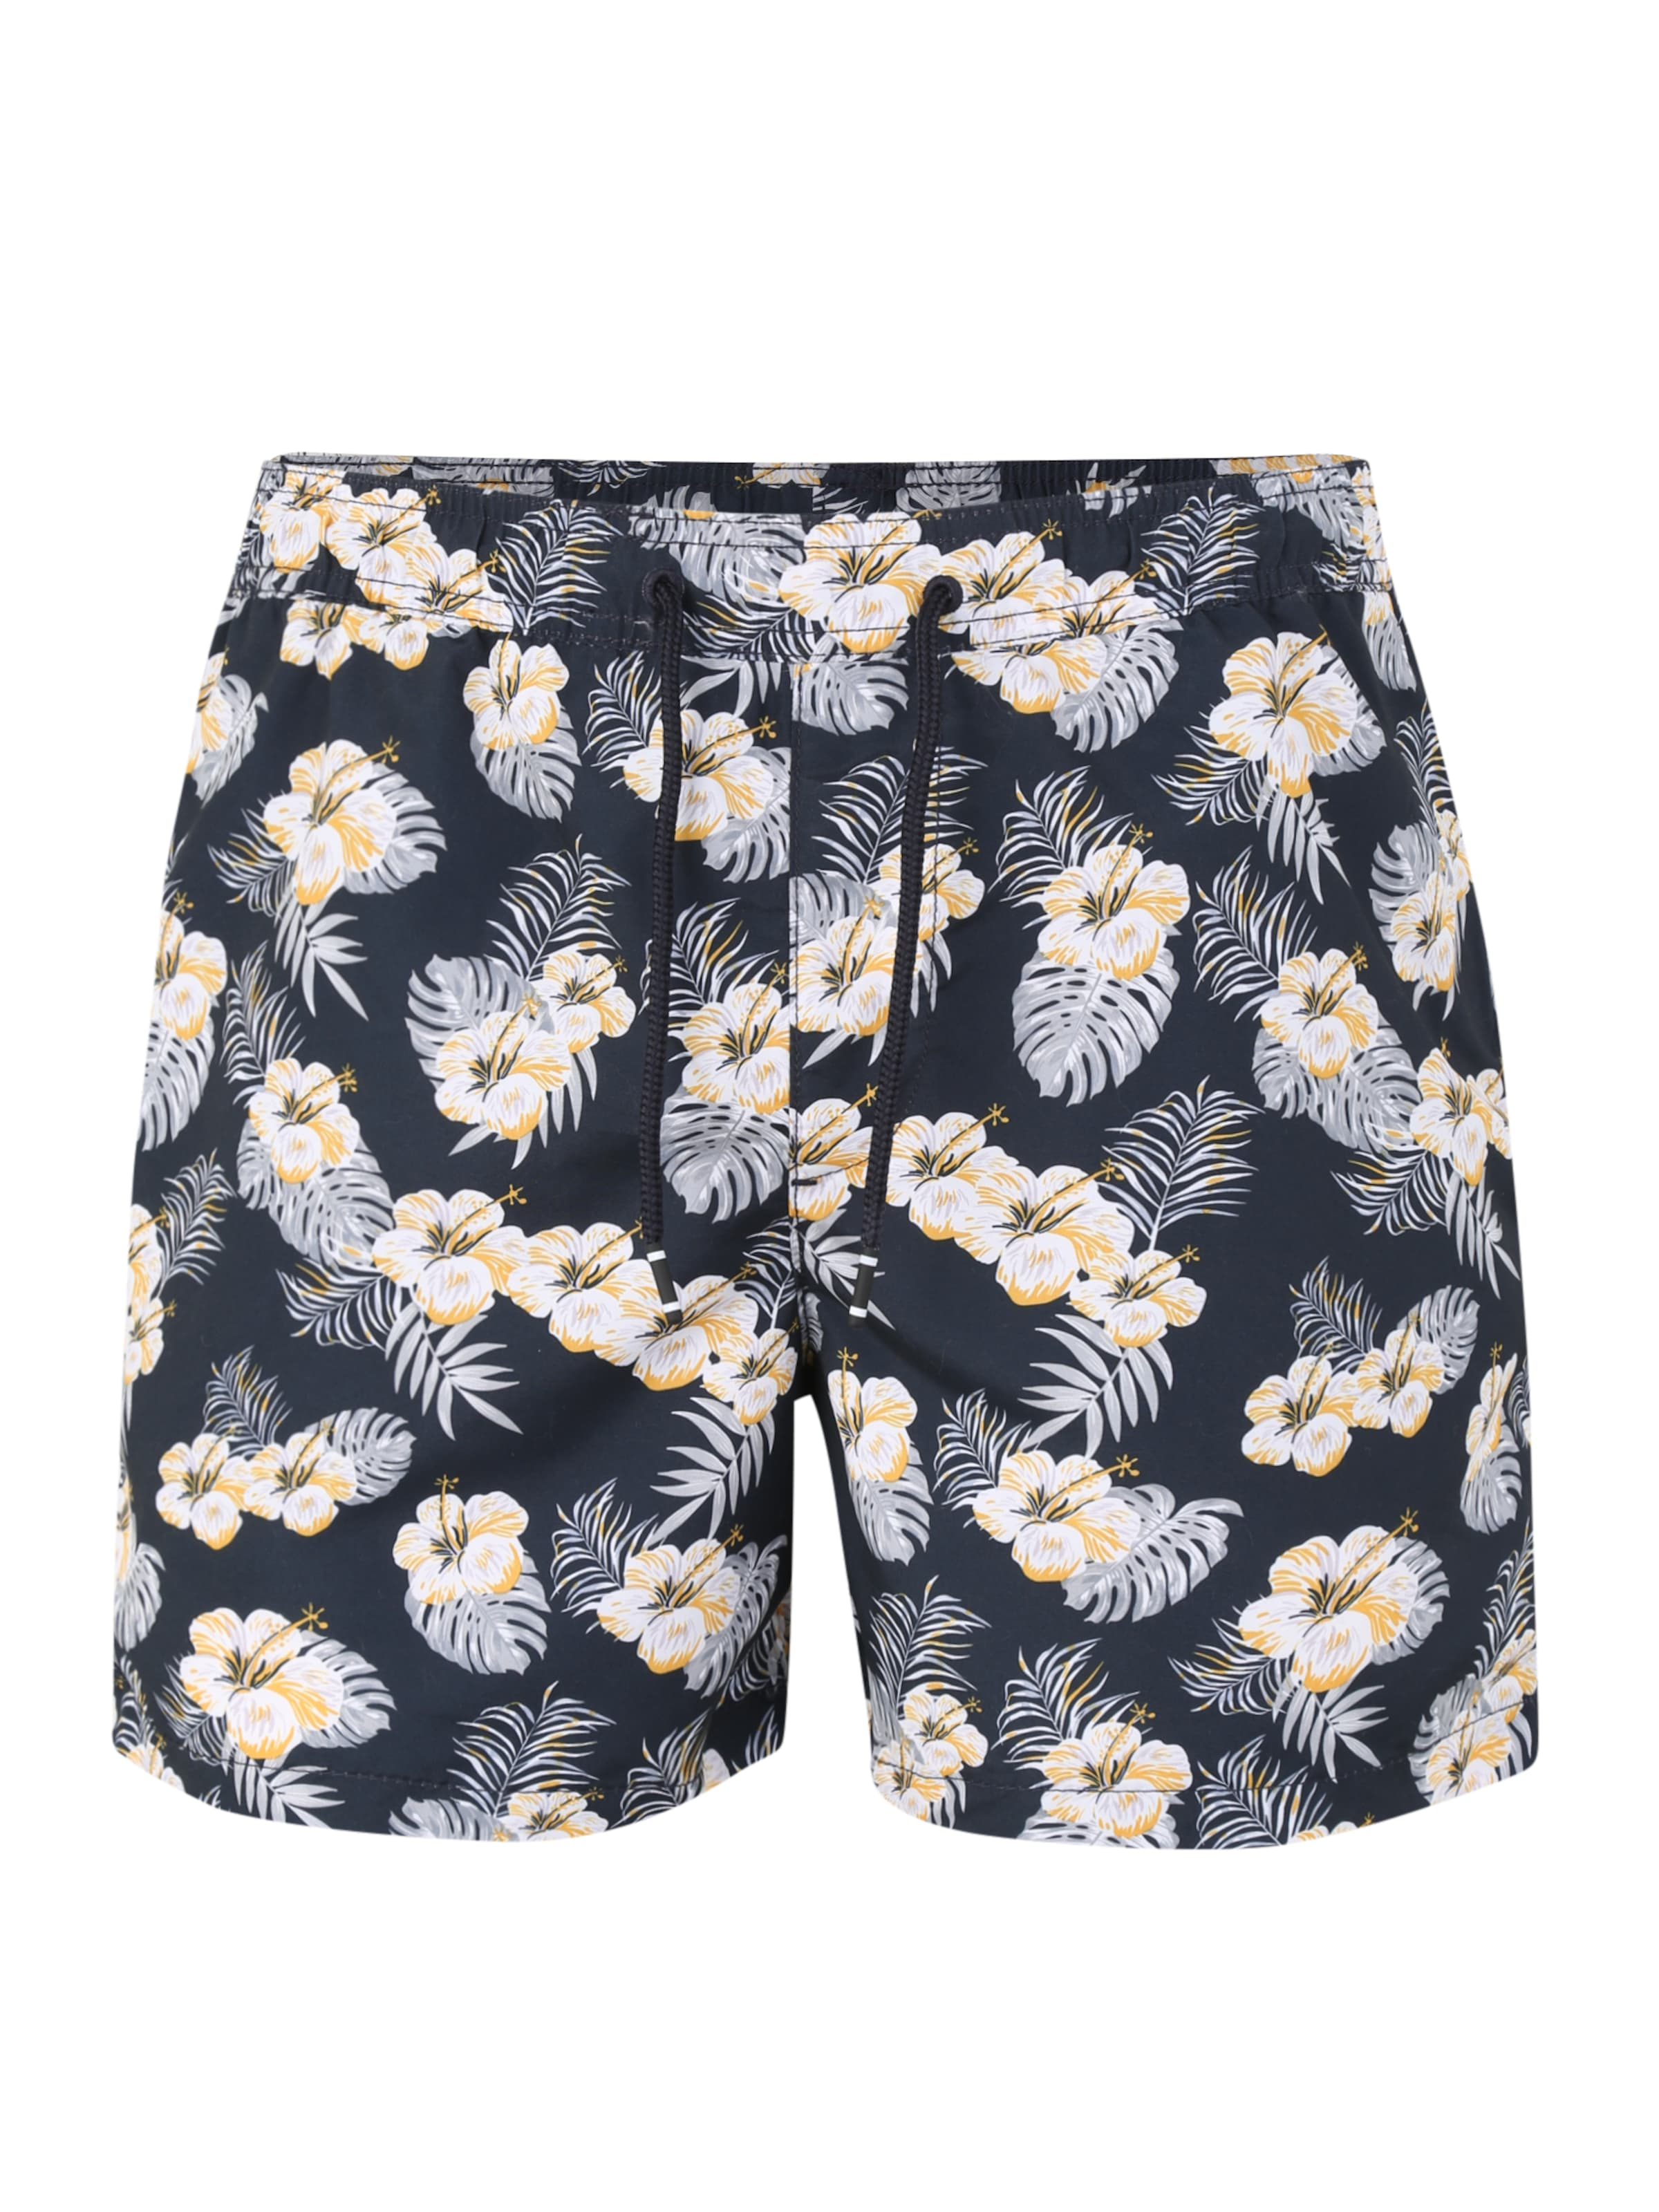 Jackamp; NachtblauGelb Badeshorts Akm Jones Jjswim 'jjicali In Sts' Shorts Windy UpSVzMq